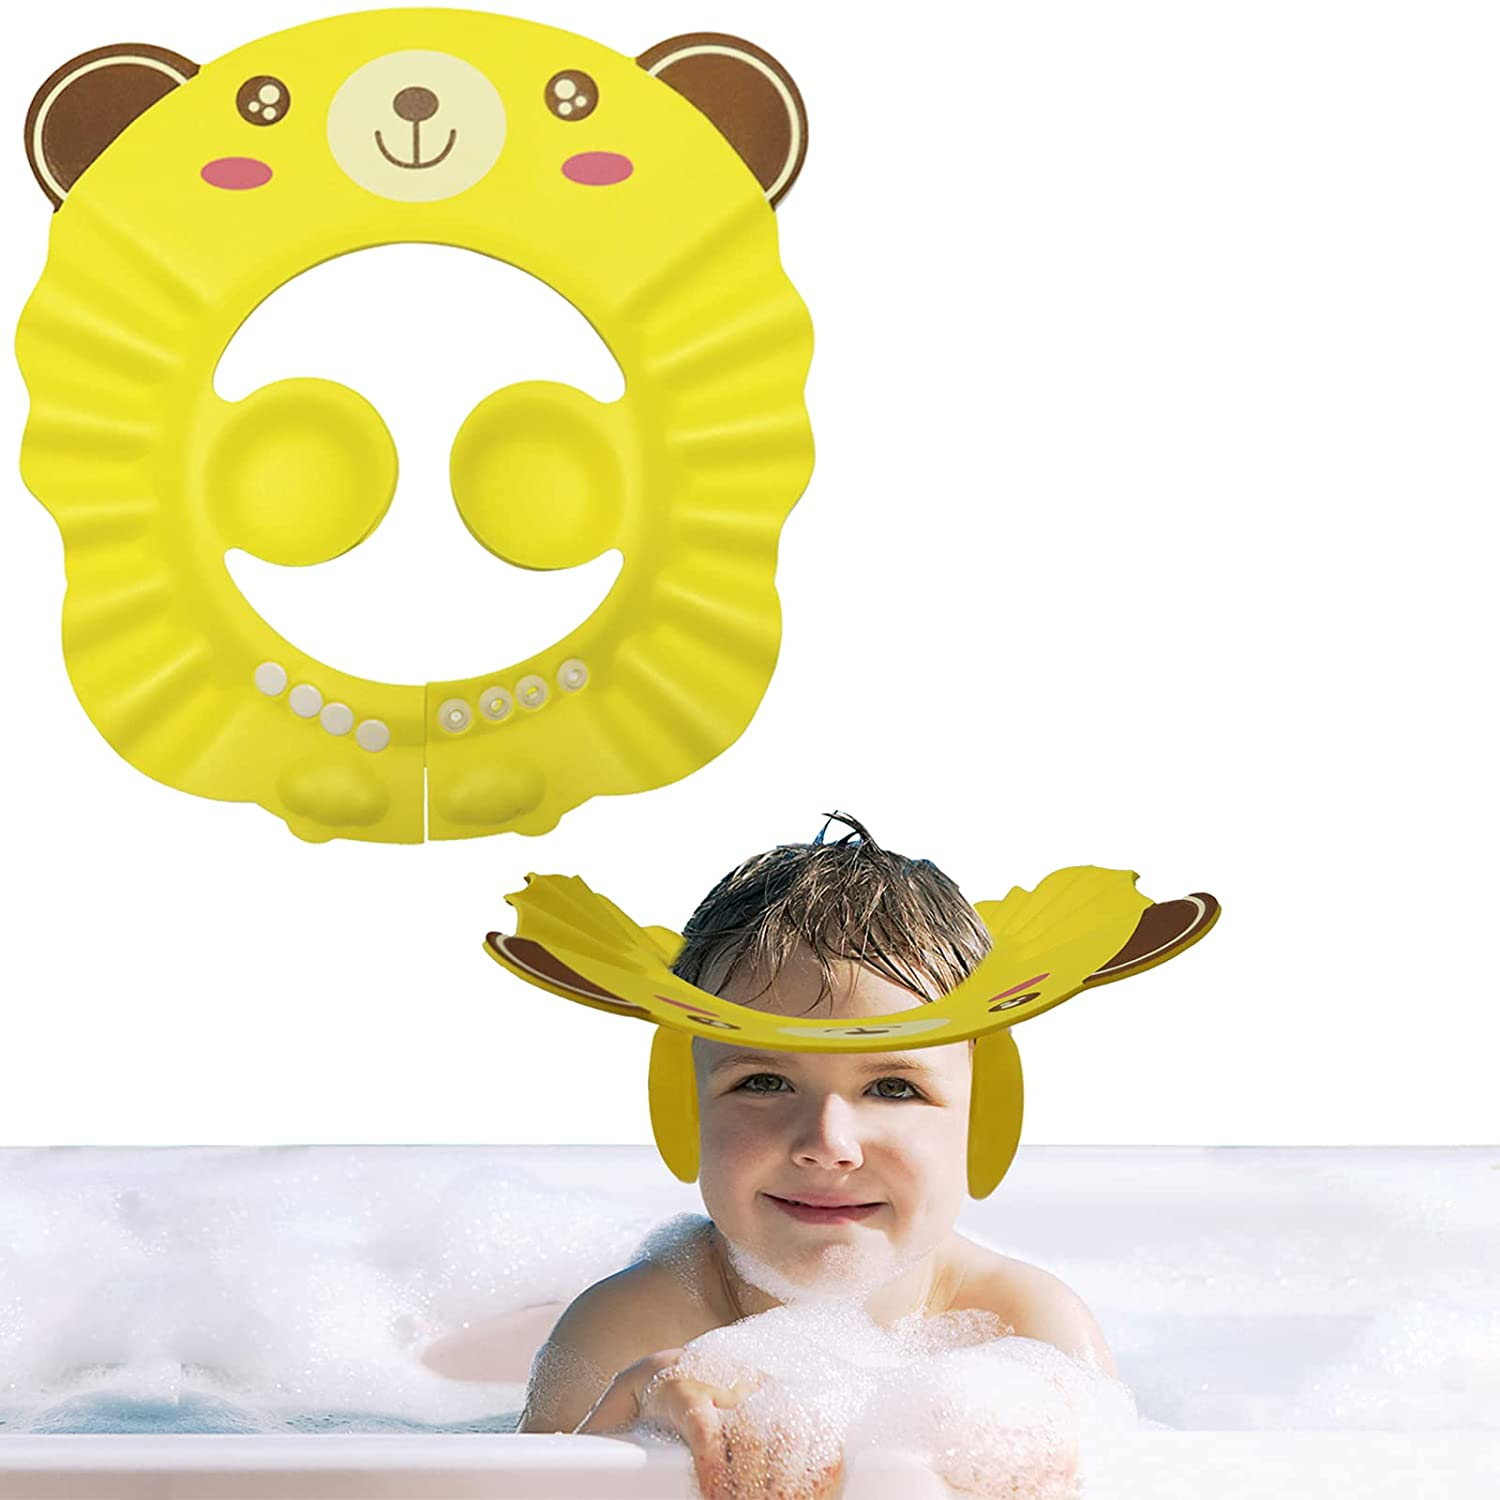 Fudragtn Baby Shower Cap, 1 pcs Little Bear Adjustable Bath Shampoo Cap, Children's Shampoo Foam Protective Cover, can Prevent Water and Foam from Entering The Baby's Ears and Eyes